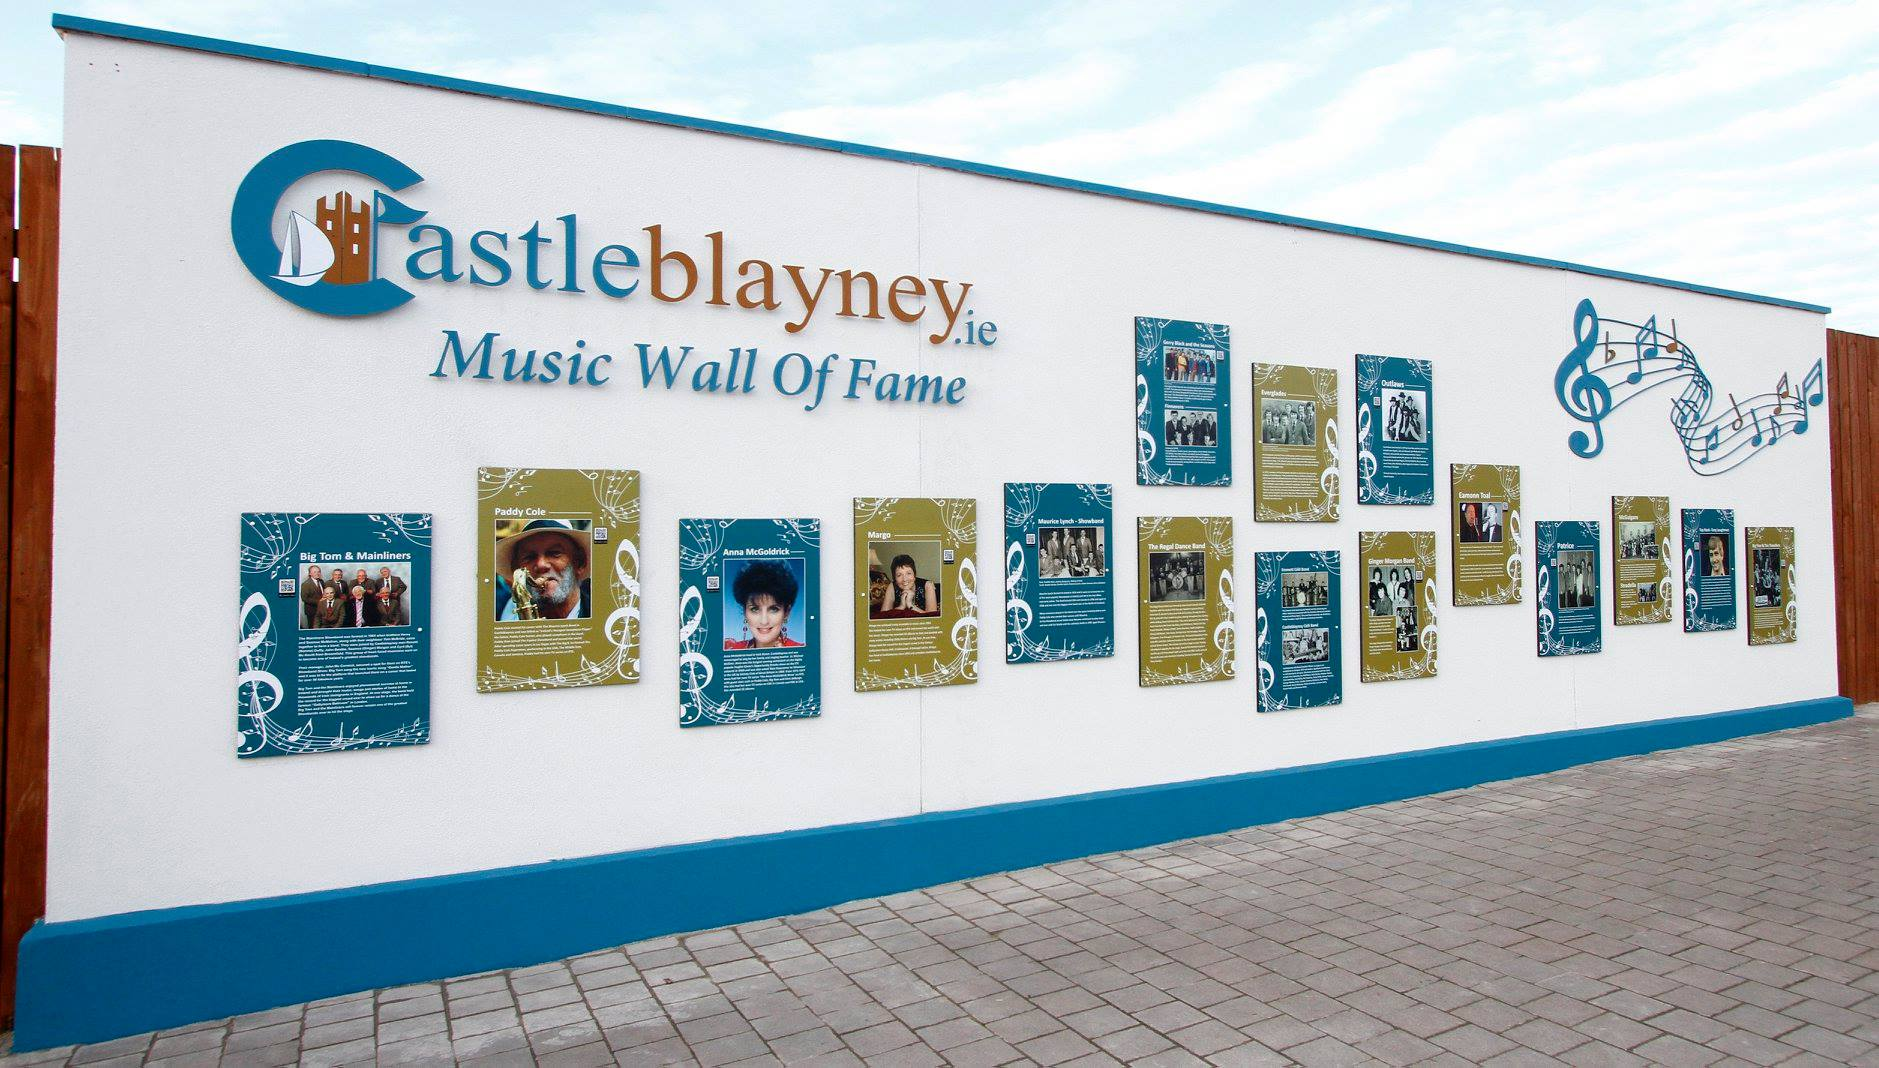 News Castleblayney Circuit Board Wall Murals The Weekend Events Were Made Possible By Regeneration Committee Who Operates Under Auspices Of Carrickmacross Municipal